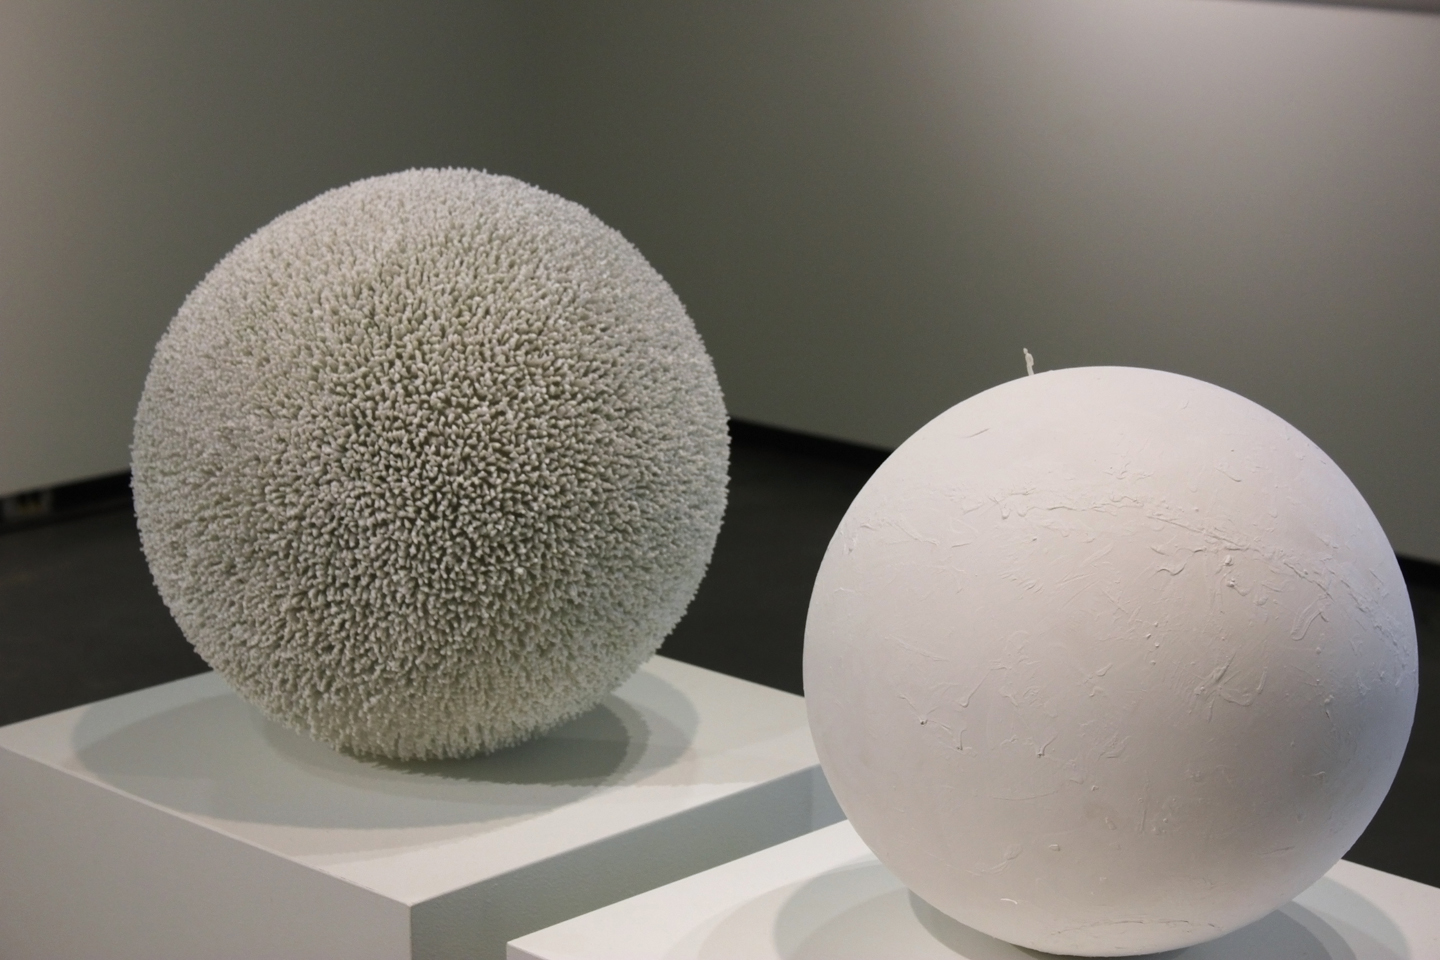 Private and Public Lonerism - Plastic Human Figures on Primed Spheres